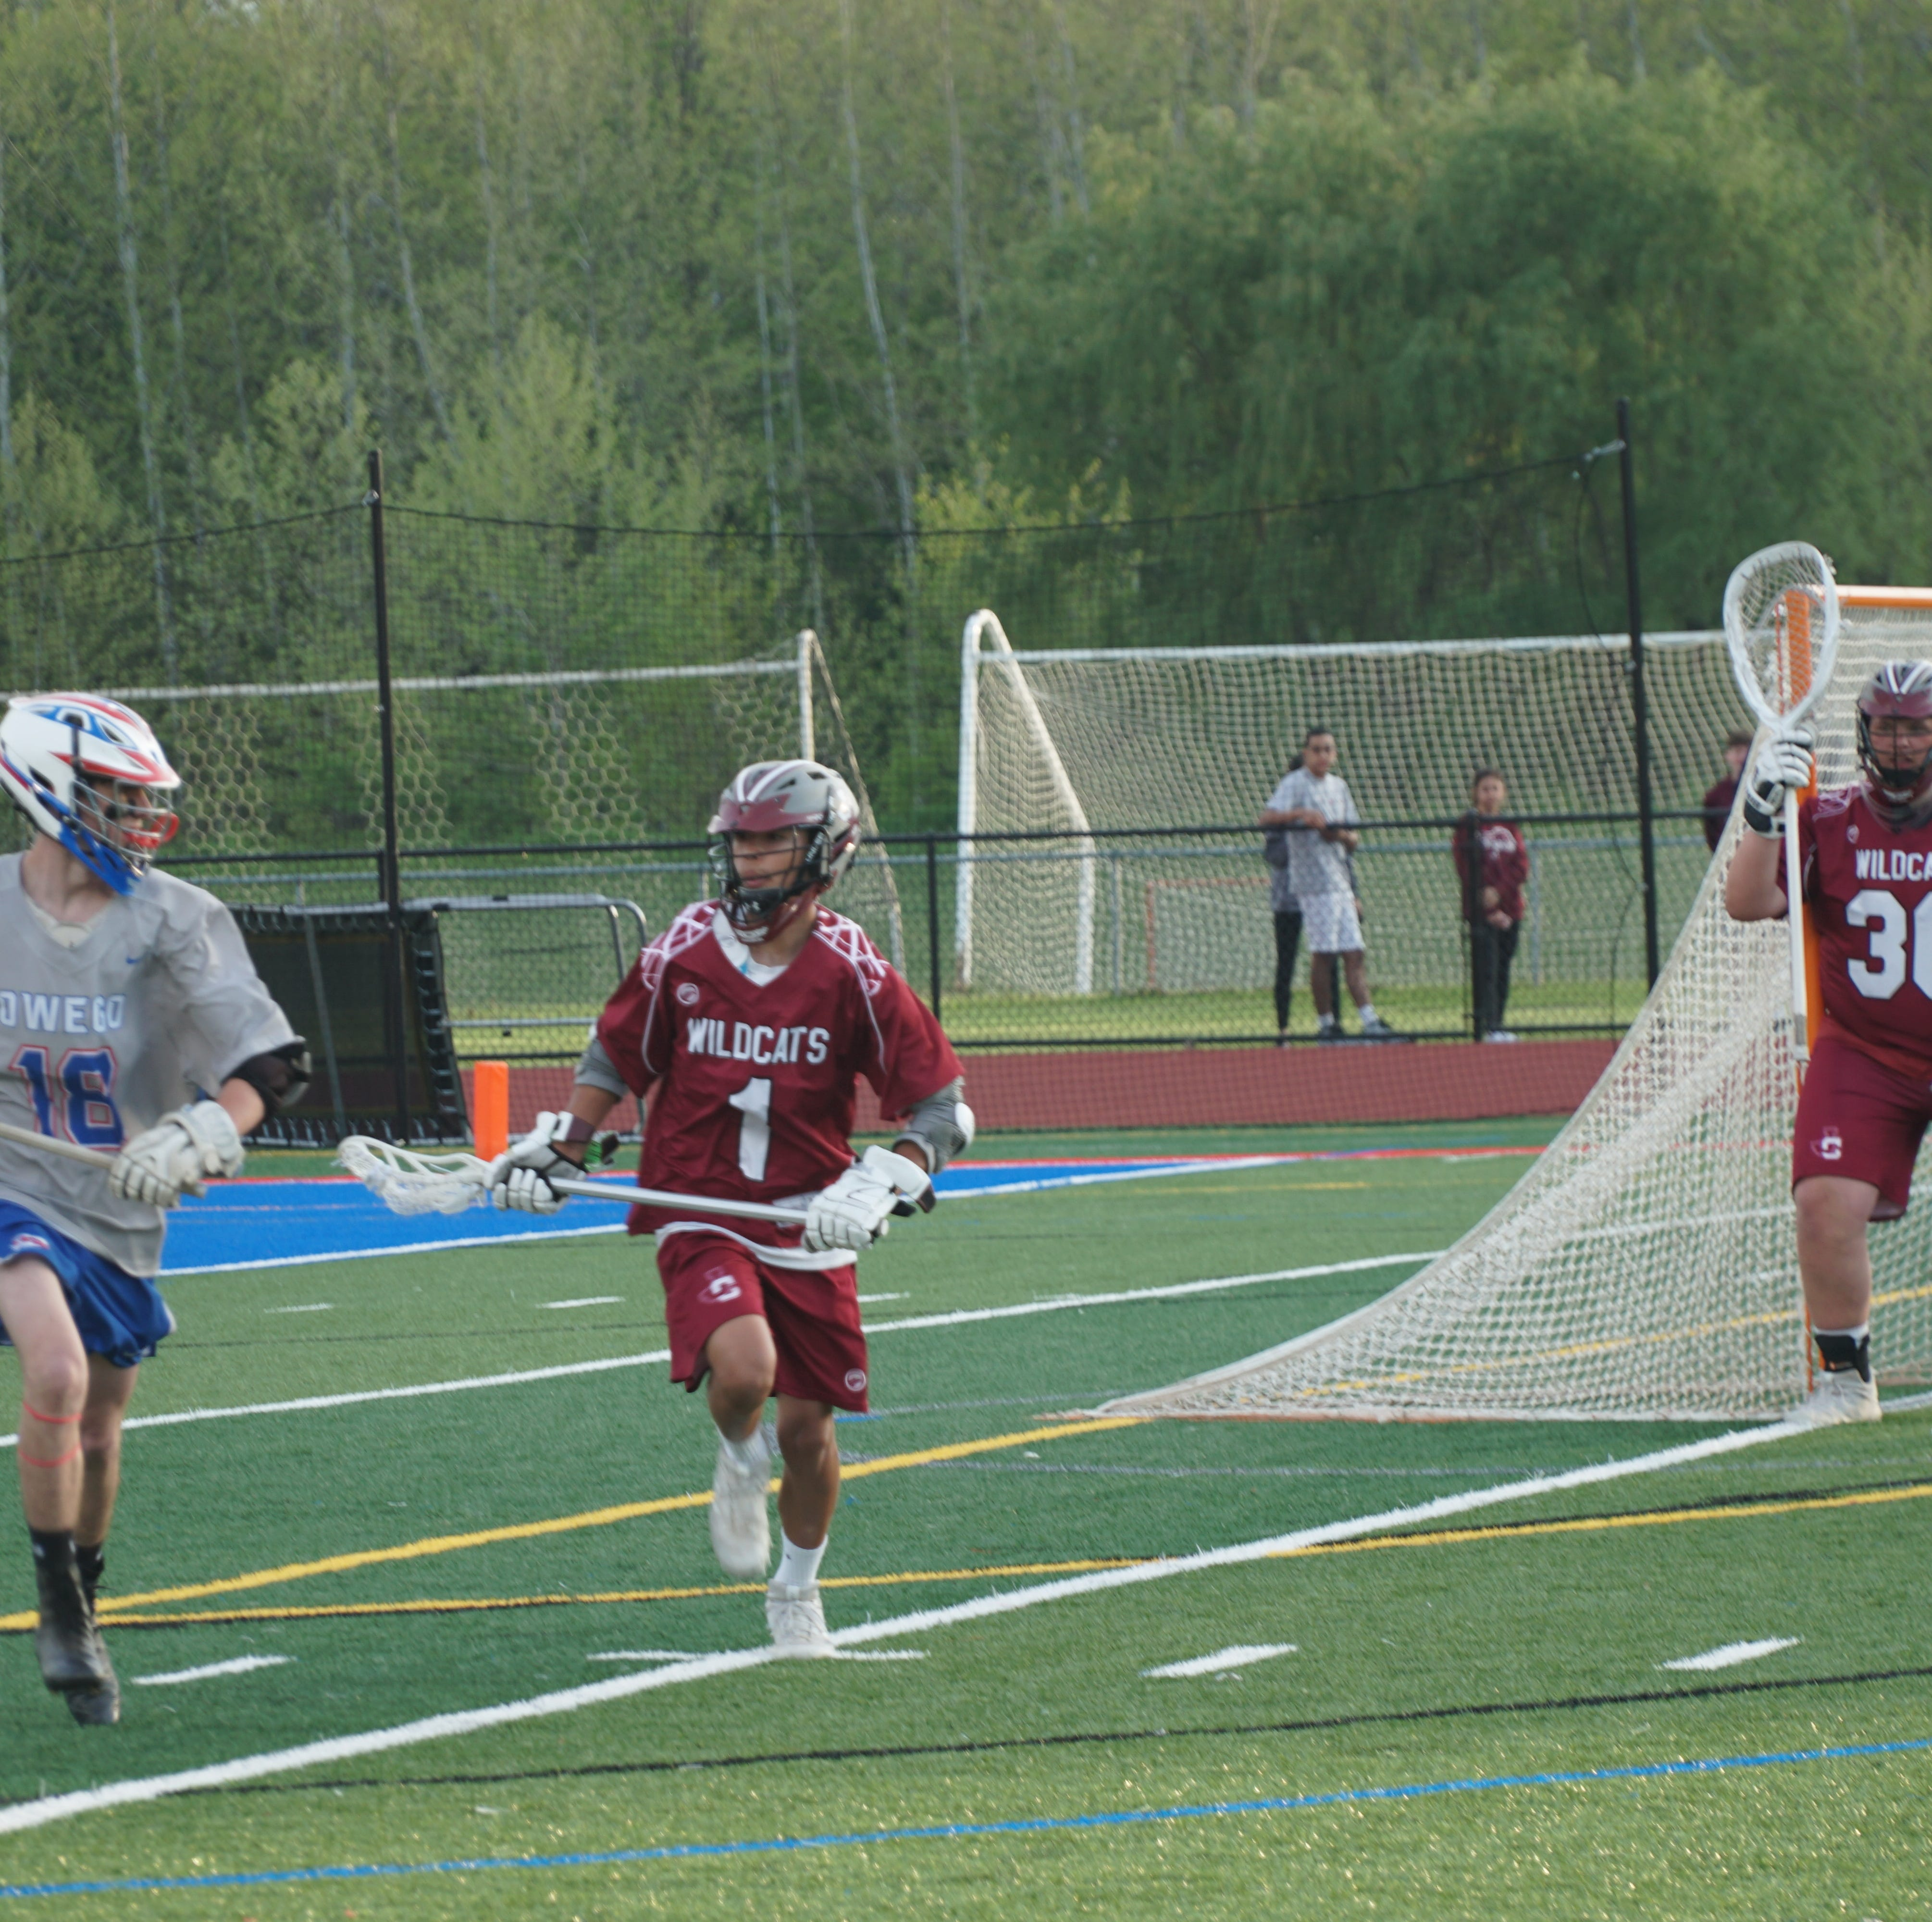 Boys Lacrosse: Seven-goal spurt carries Owego to first sectional title